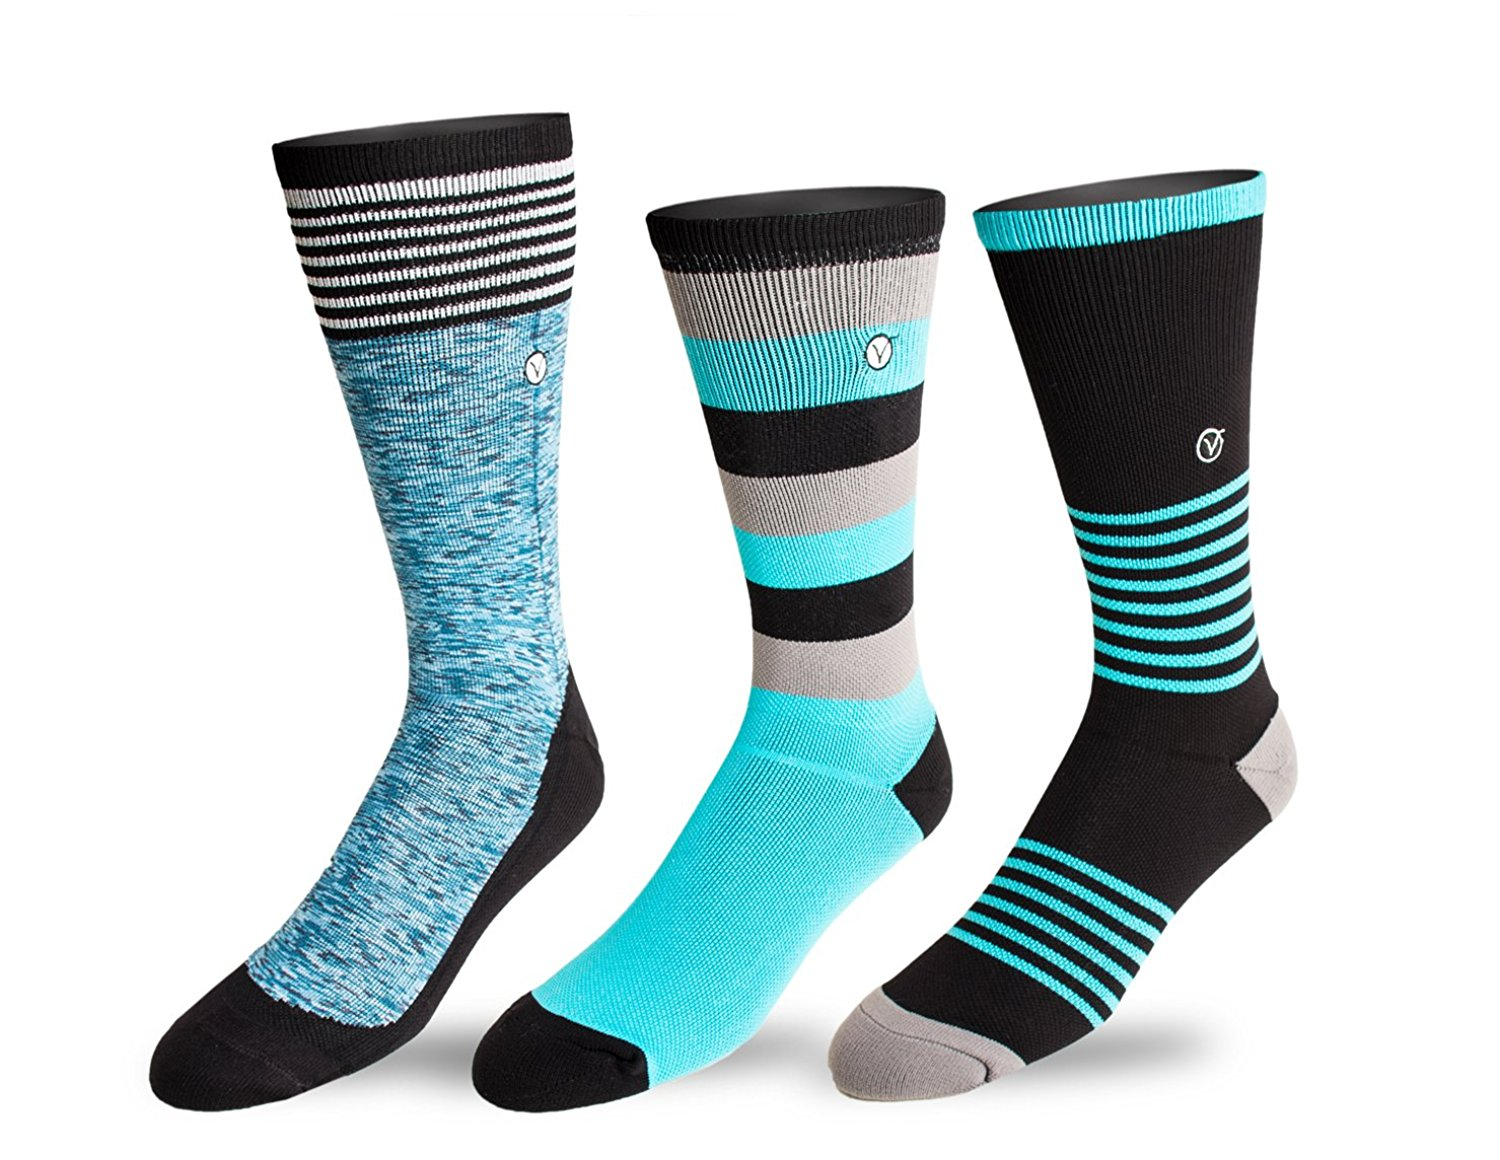 Youth 3 Pack Crew / Athletic Socks - Running, Basketball, Sports Training By VYBE (Size 5-8)